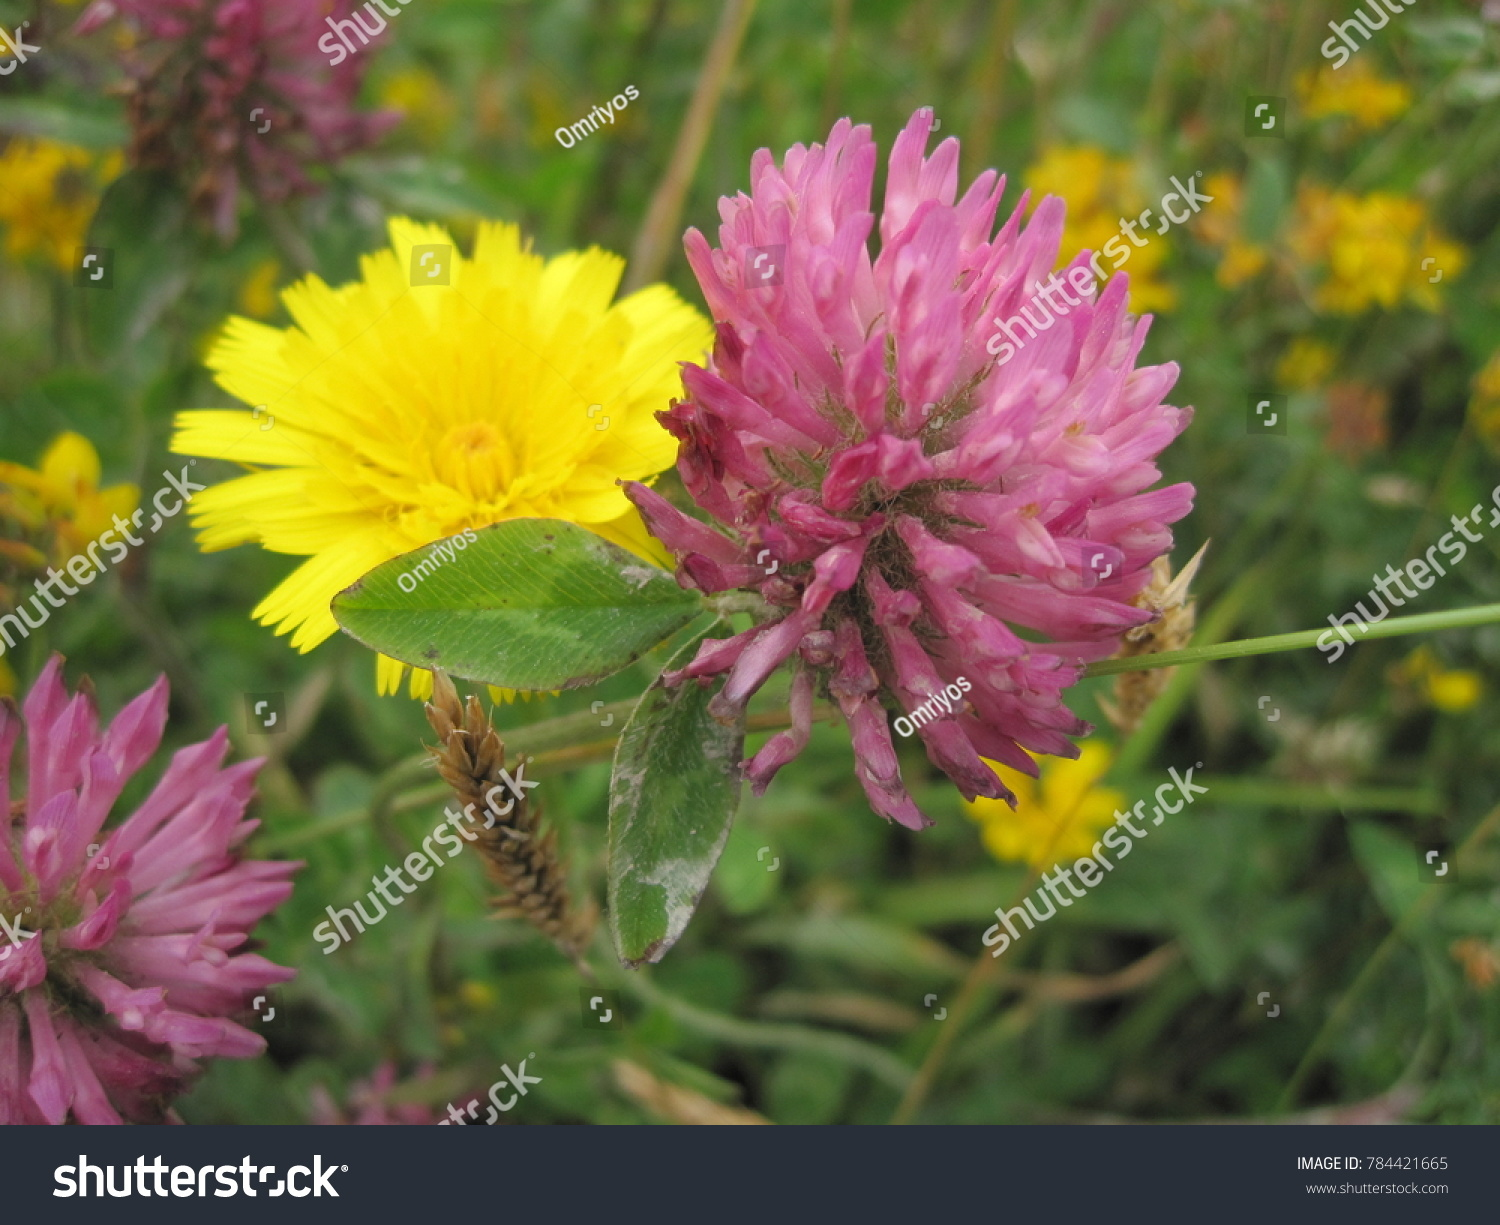 Yellow clover with purple flowers plants topsimages macro yellow purple flowers stock photo edit now jpg 1500x1225 yellow clover with purple flowers plants mightylinksfo